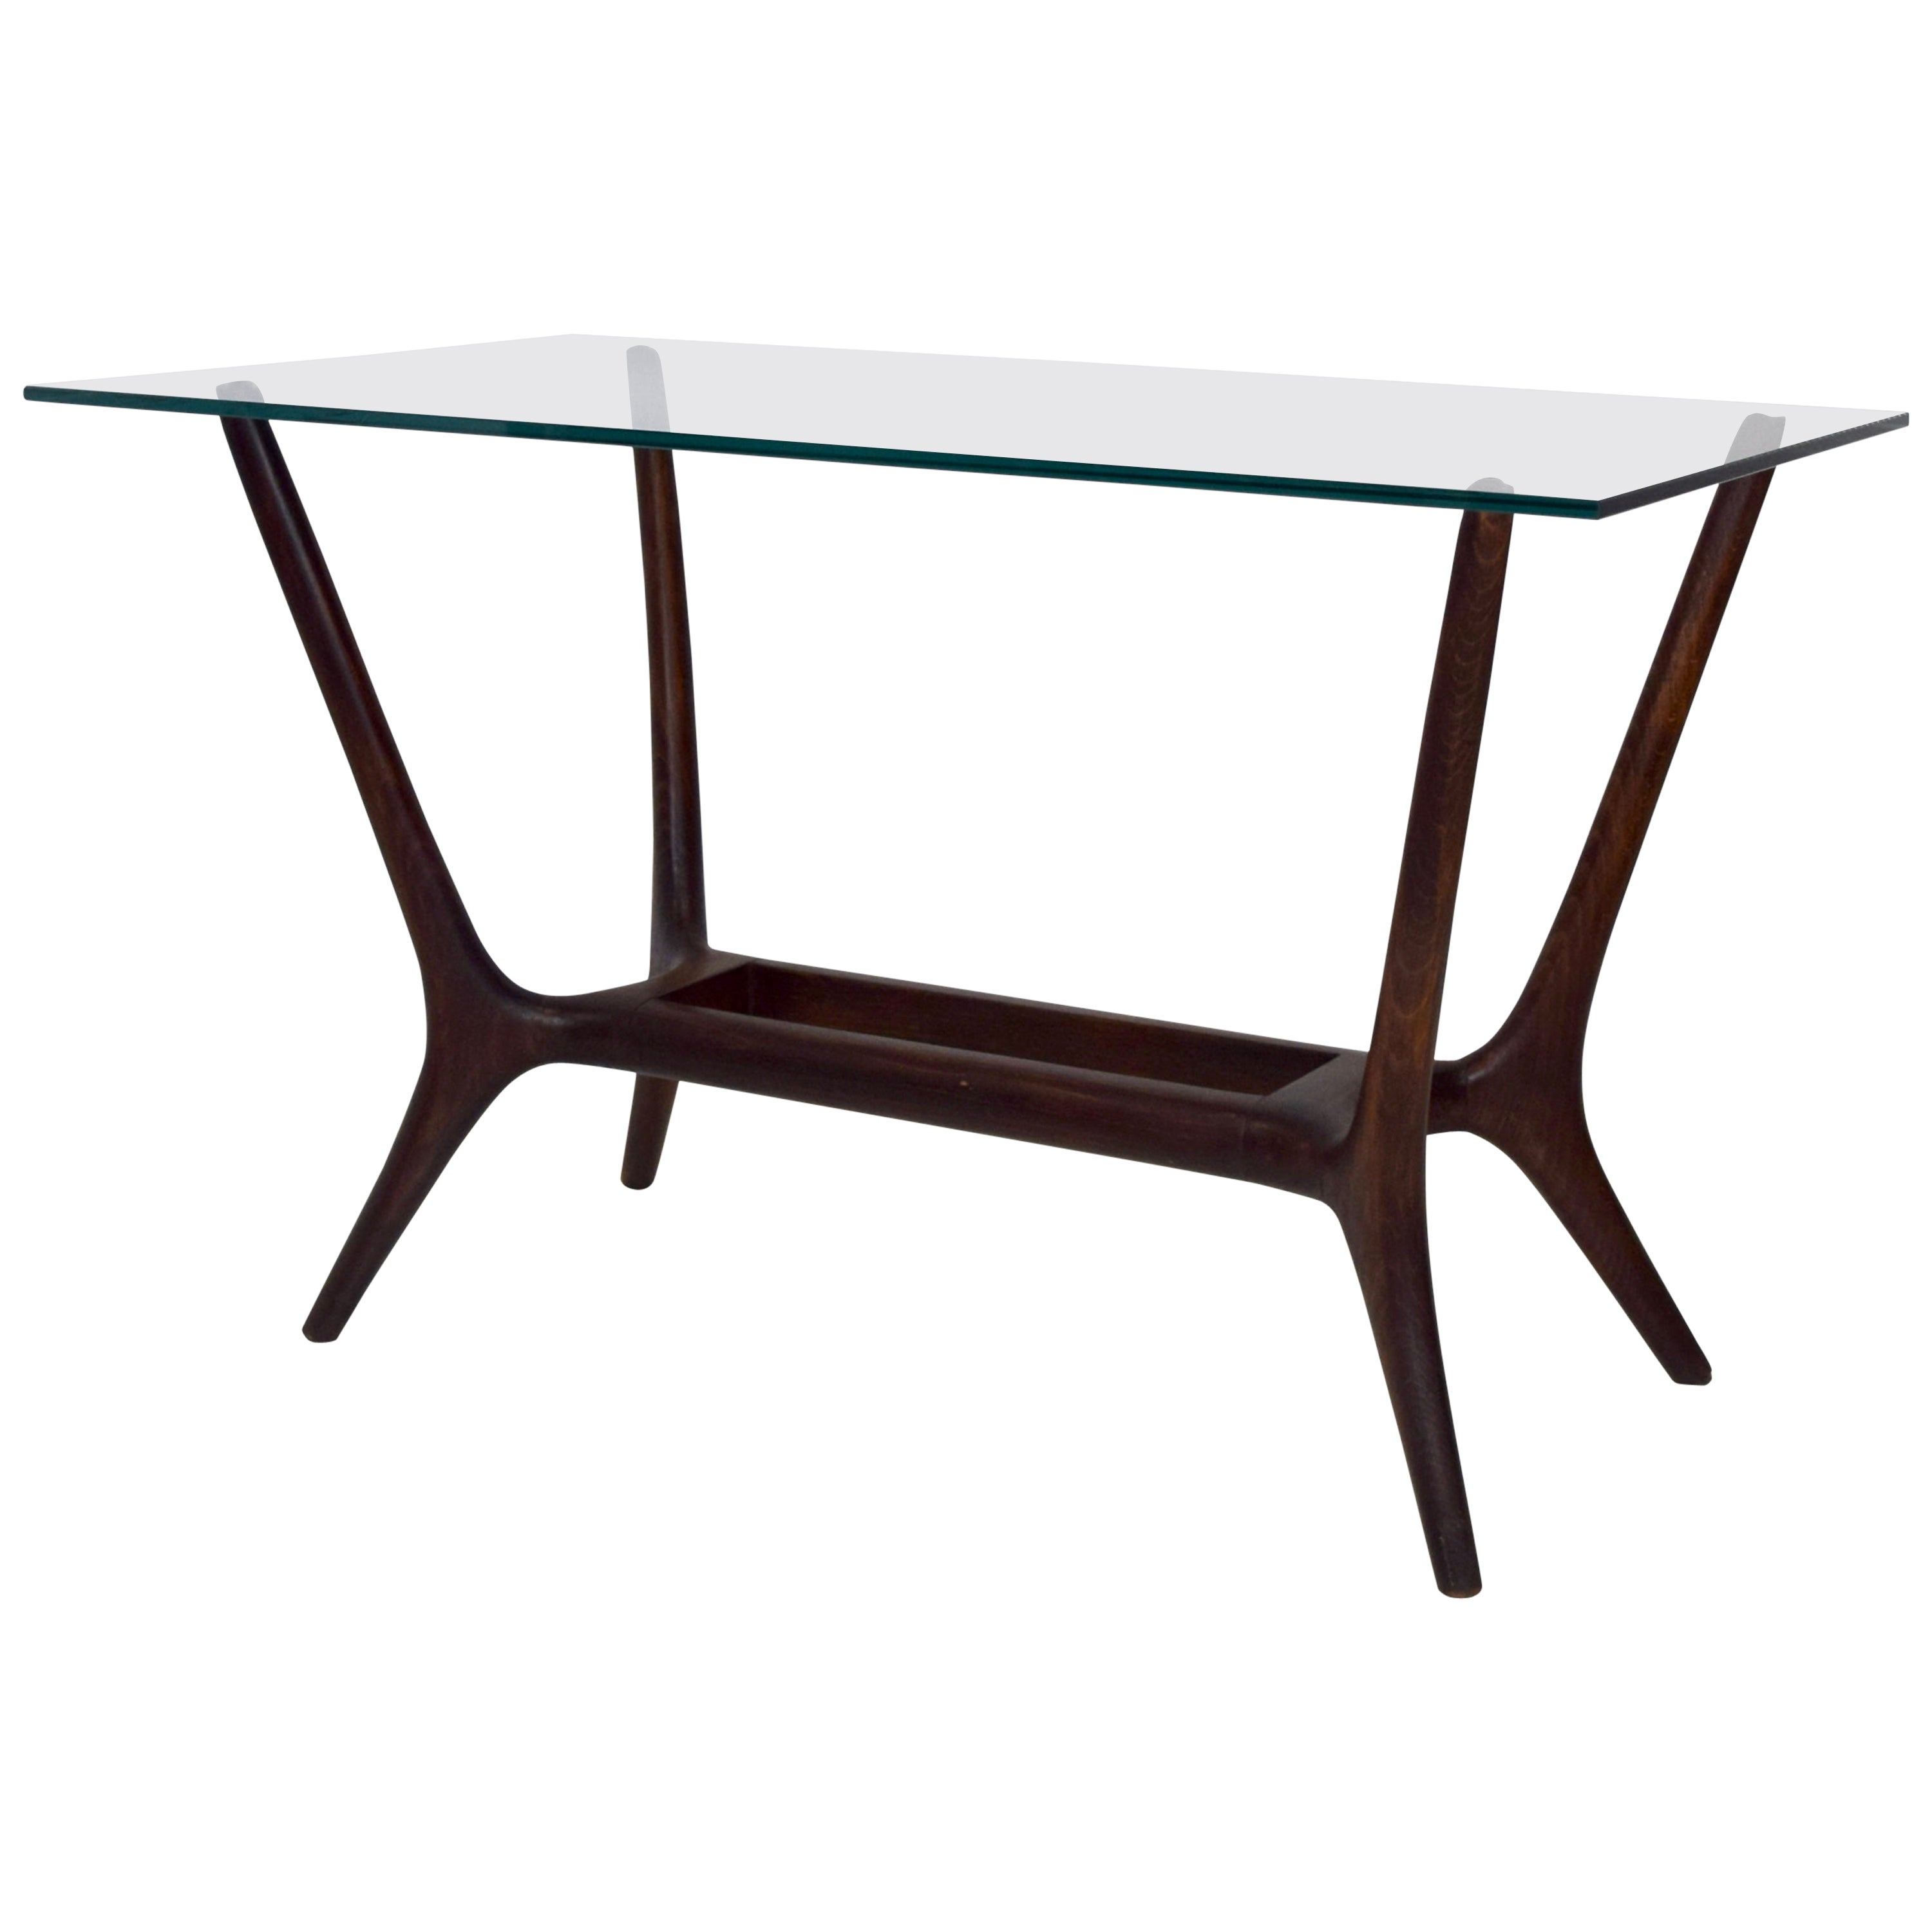 Italian Mid-Century Modern Coffee Table in Mahogany and Glass, 1950s